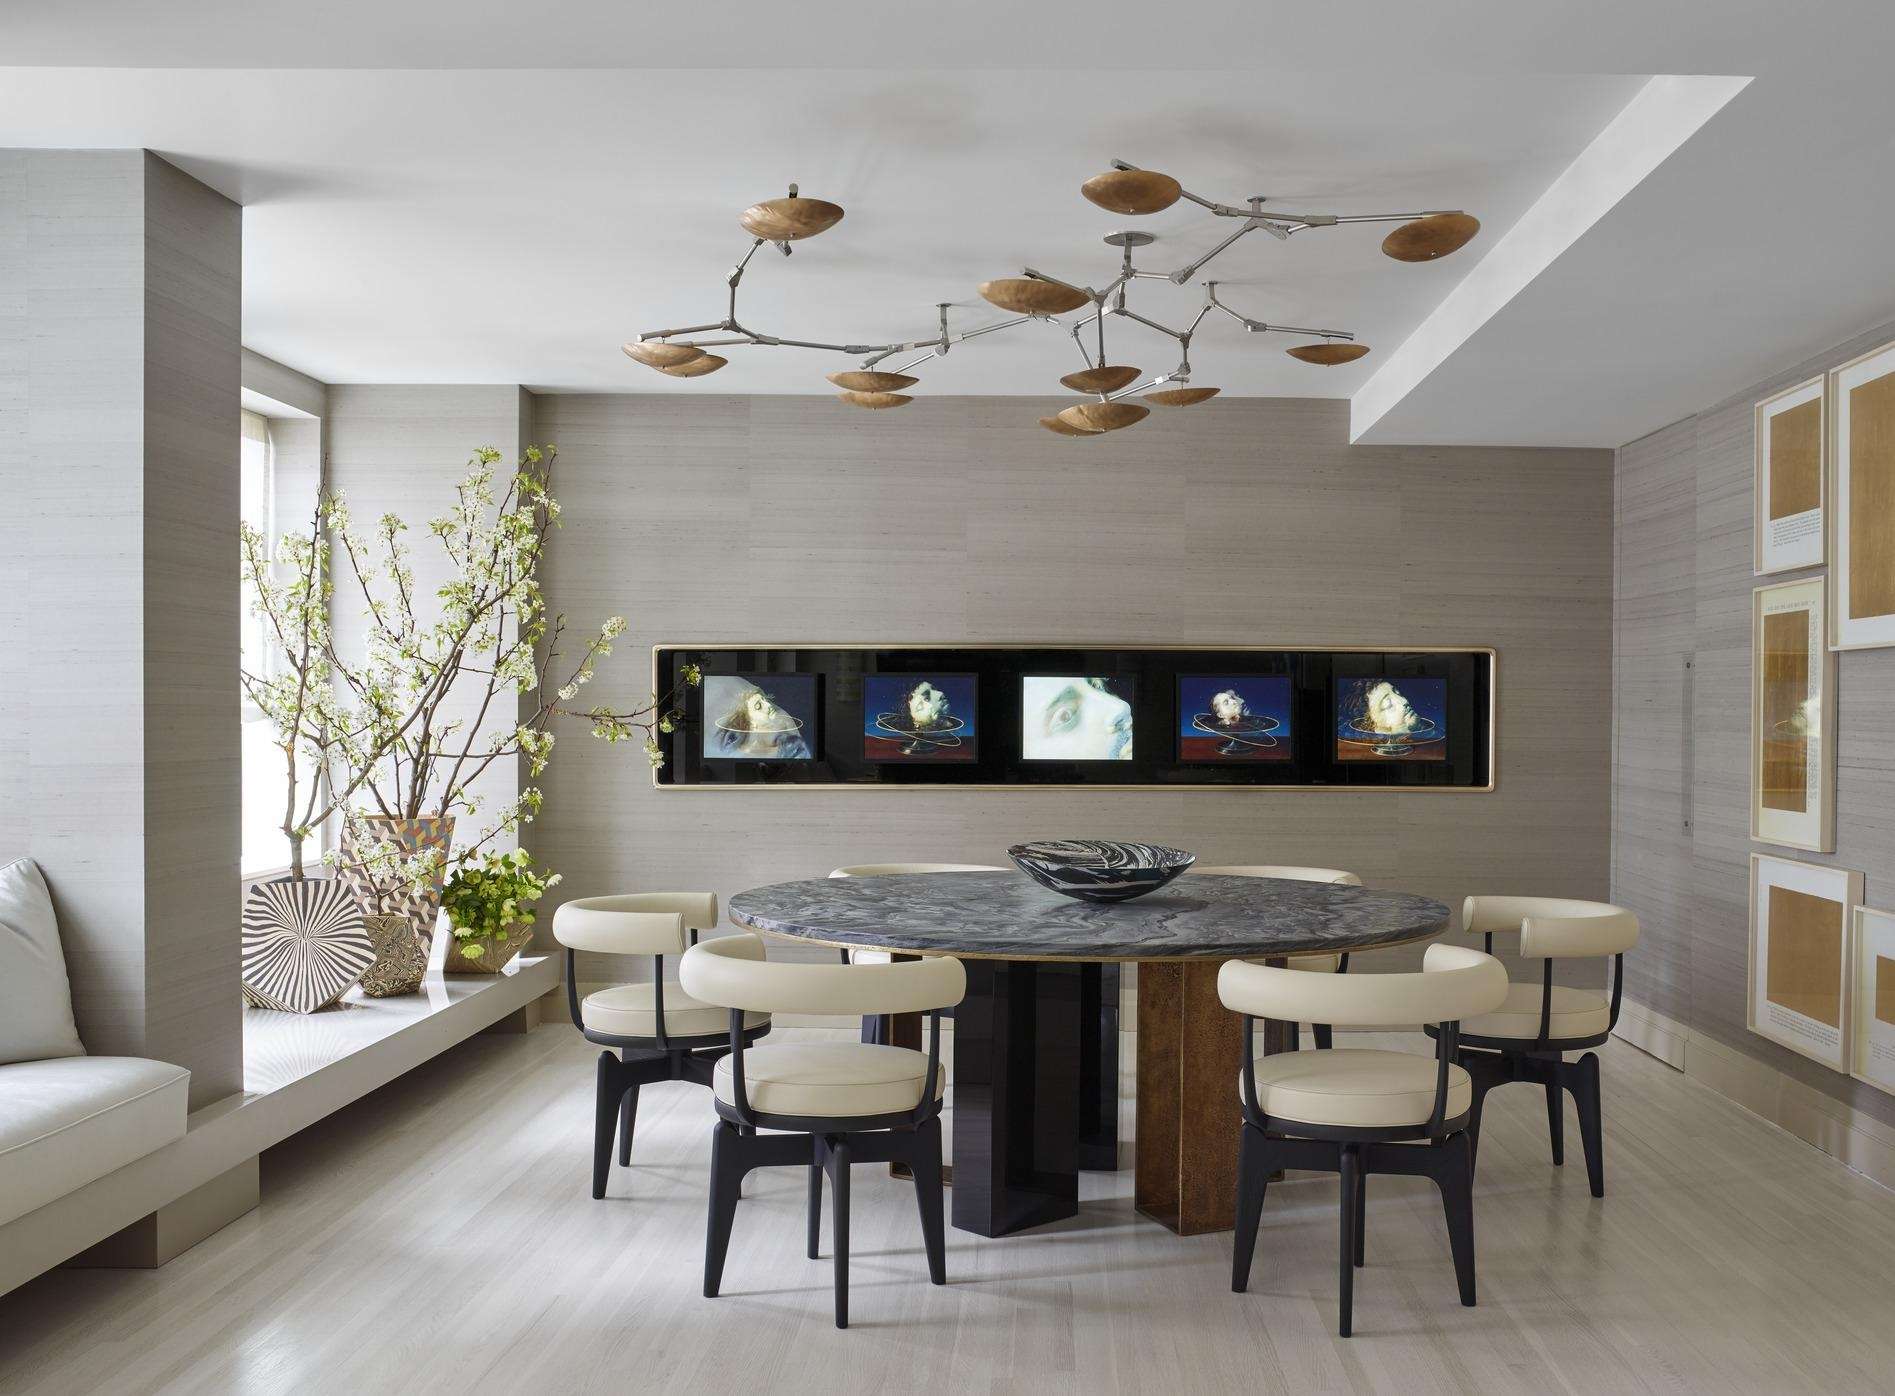 25 Modern Dining Room Decorating Ideas – Contemporary Dining Room Within Modern Wall Art For Dining Room (Image 7 of 20)